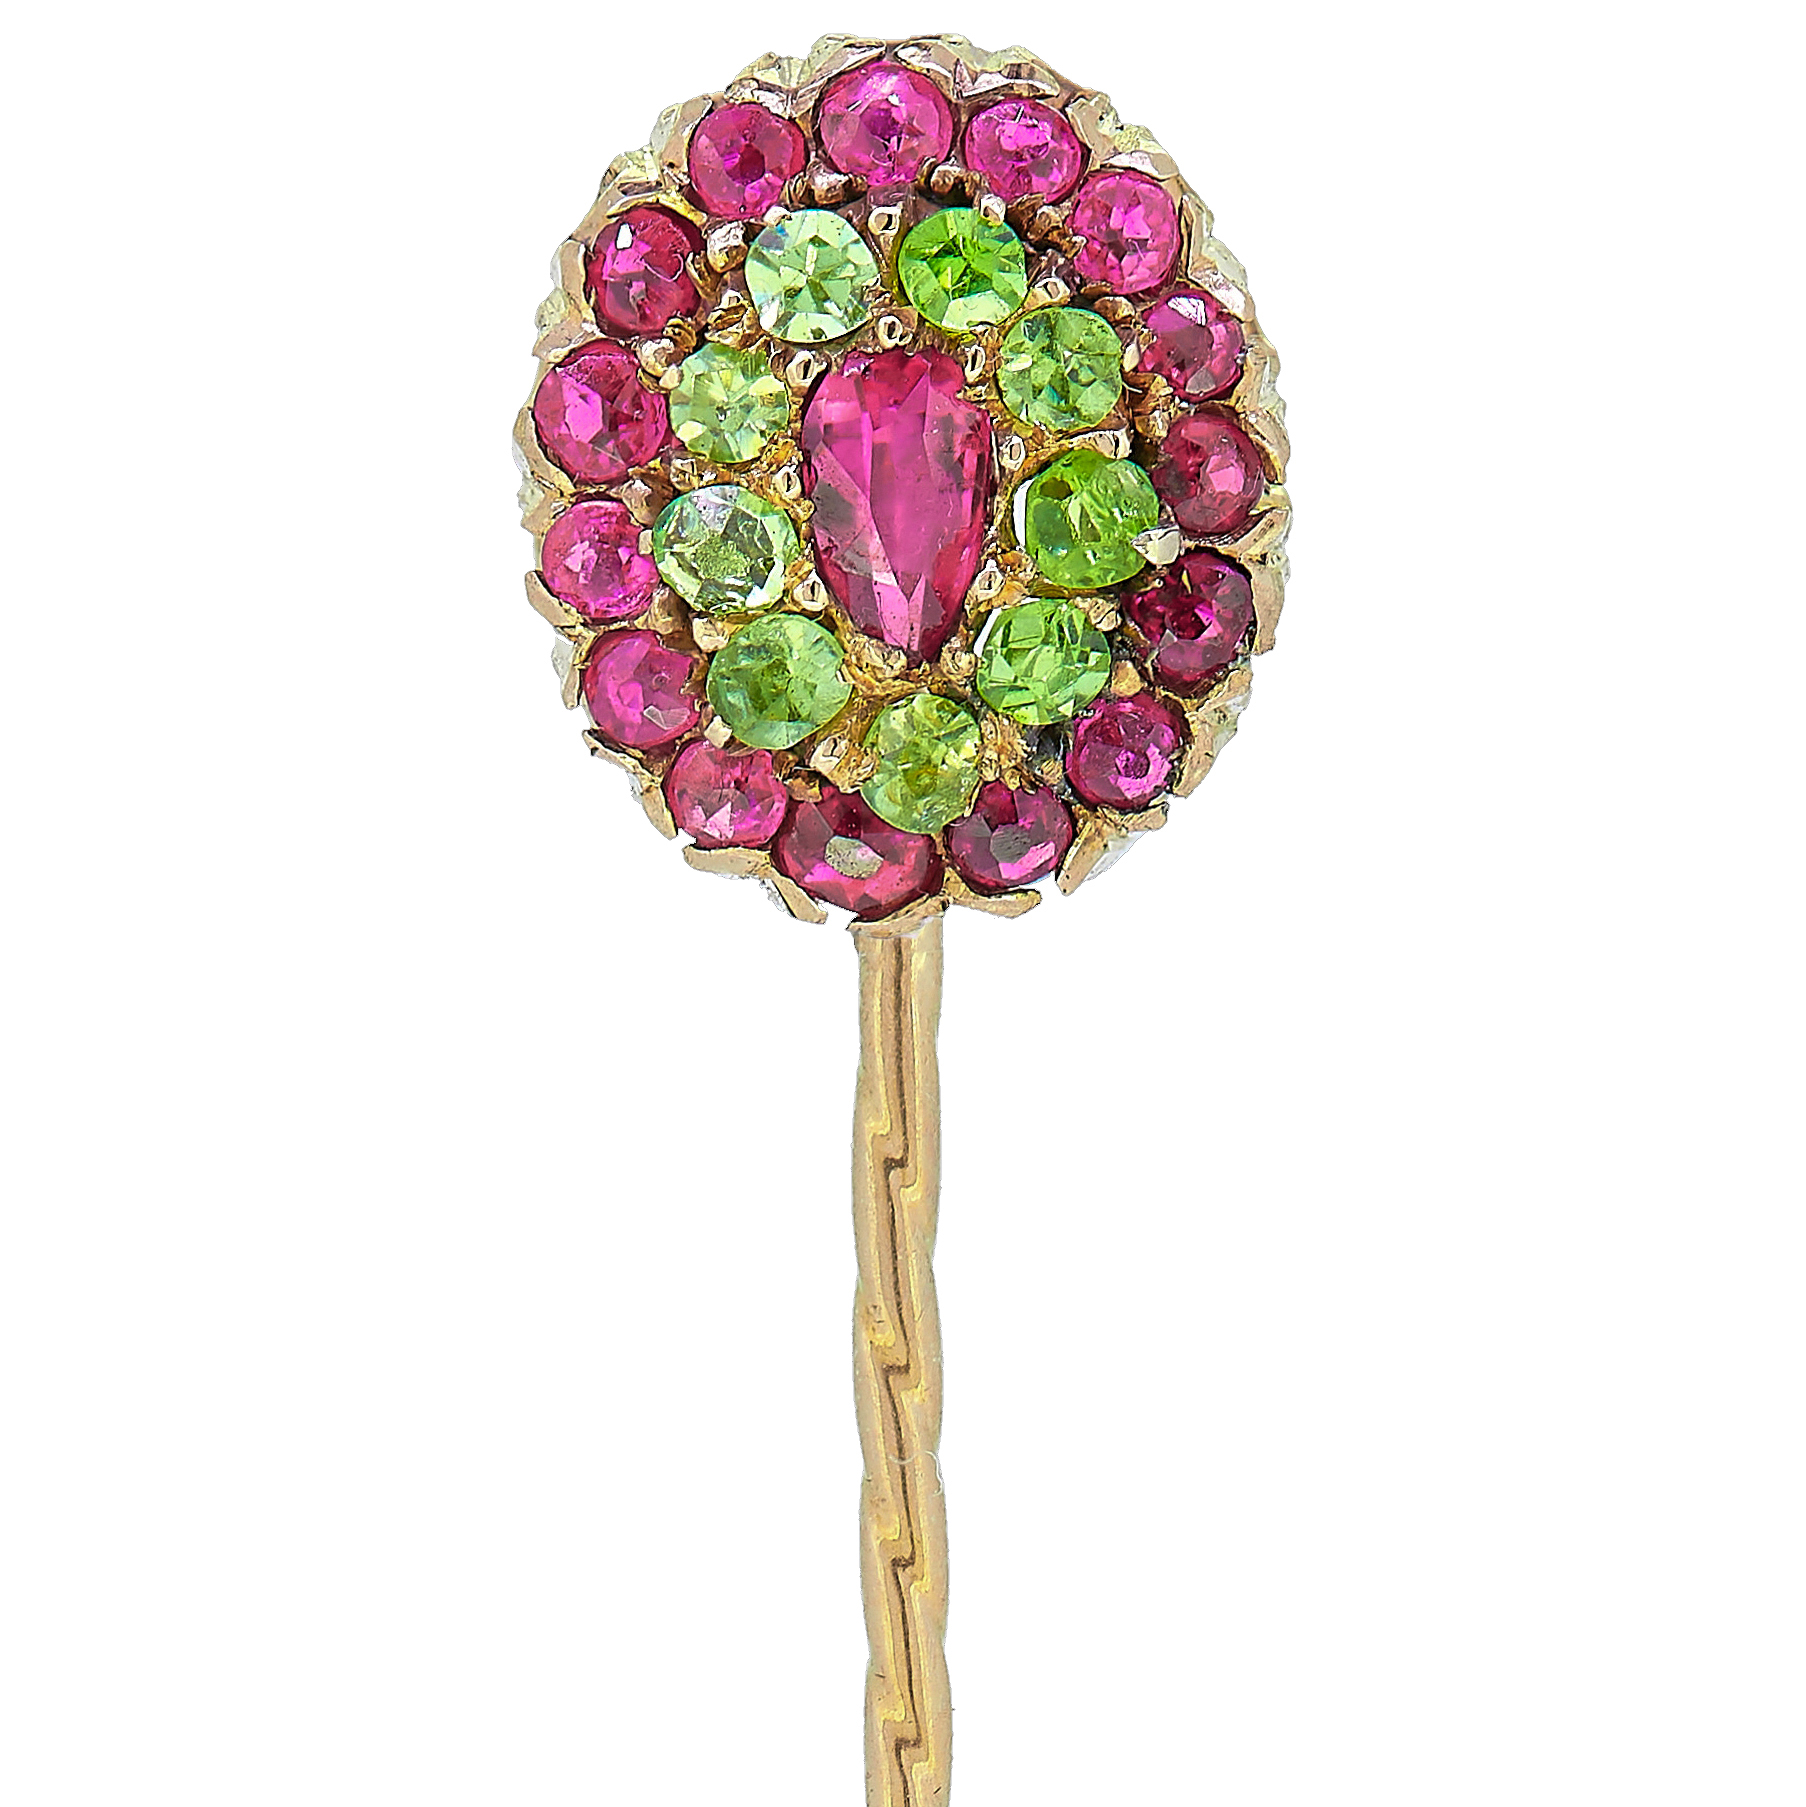 ANTIQUE VICTORIAN PERIDOT AND RUBY CLUSTER TIE PIN